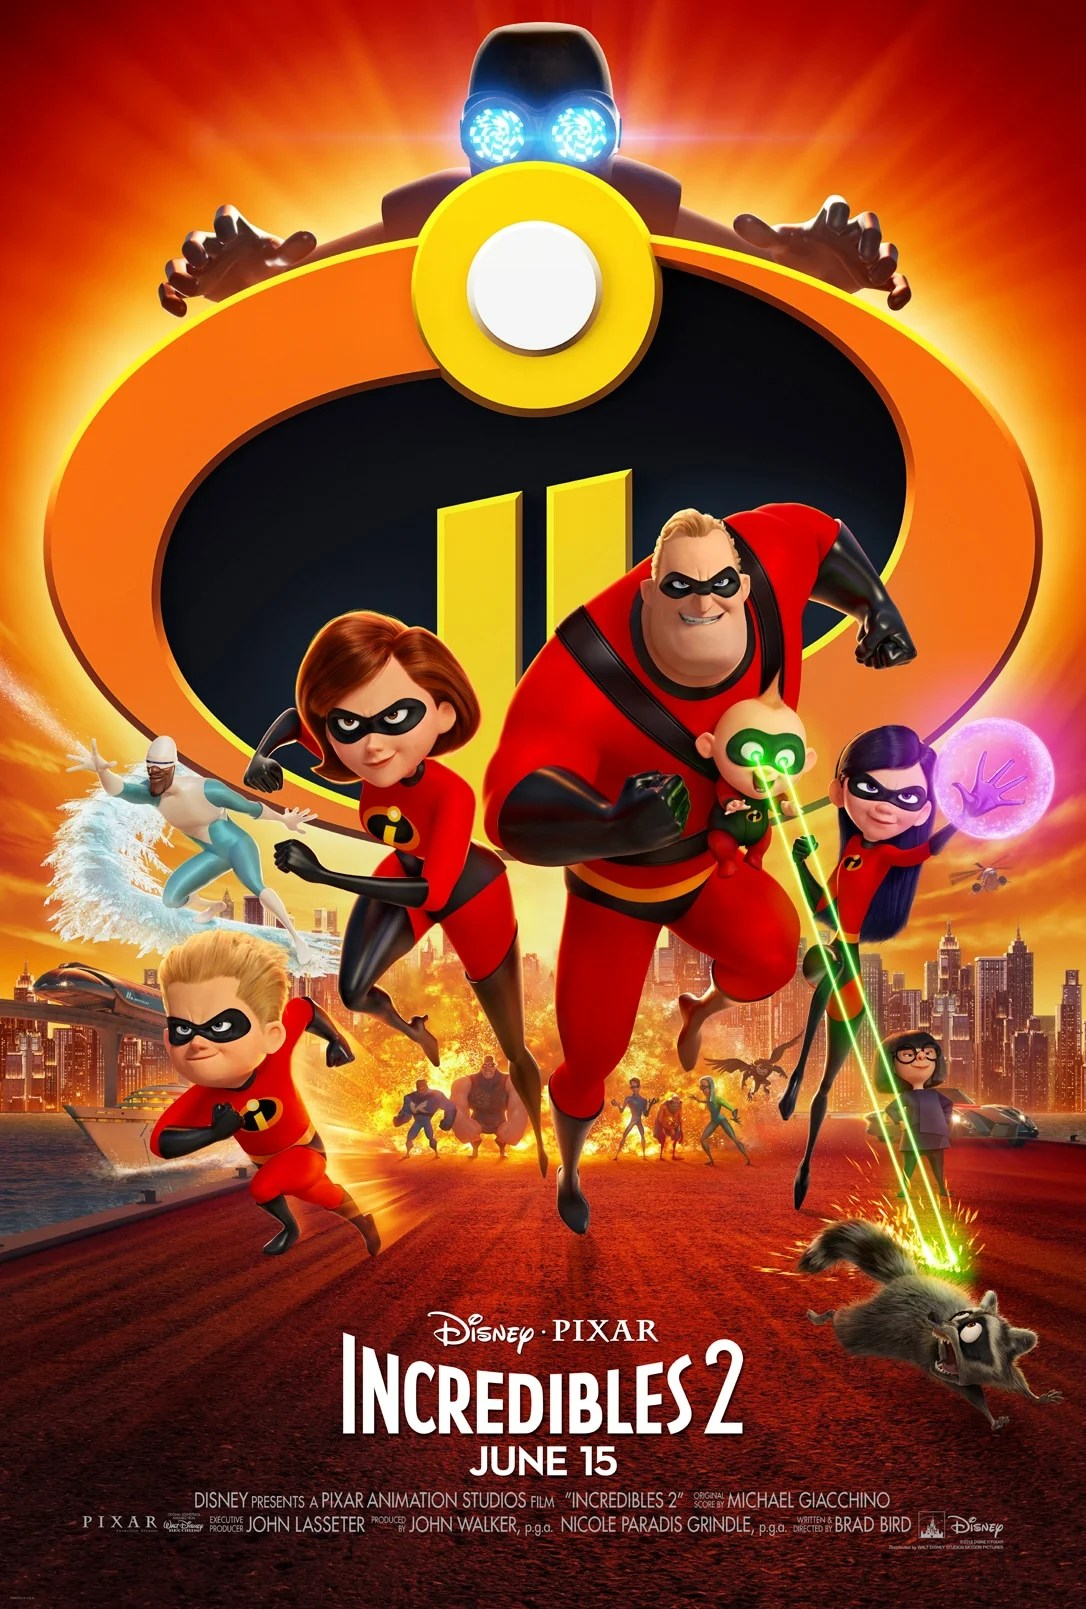 The new Disney Pixars Incredibles 2 Movie Poster. Disney•Pixar's INCREDIBLES 2 that opens in theatres everywhere June 15th!